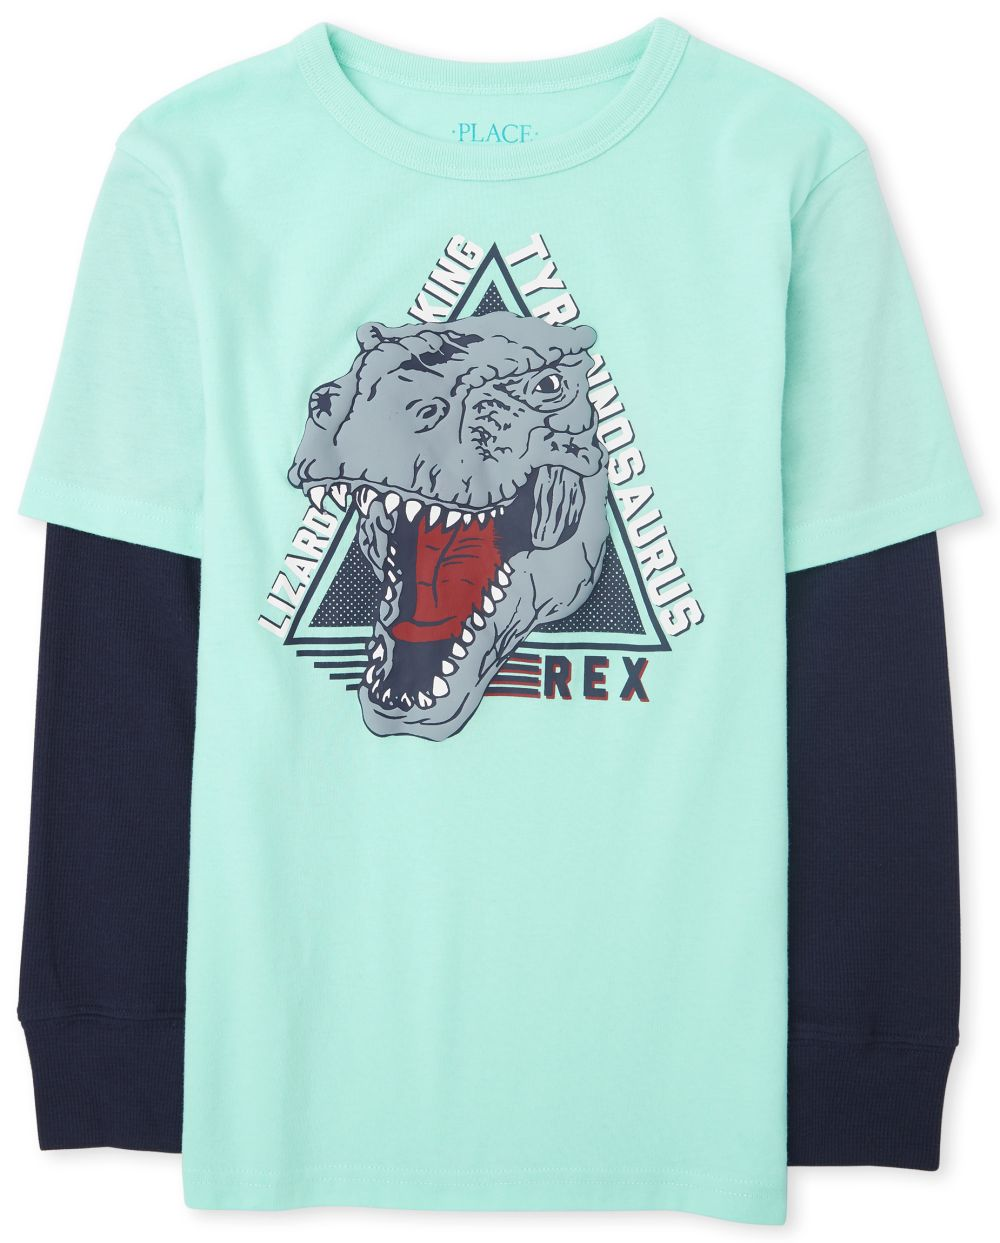 Boys Graphic Thermal 2 In 1 Top - Green